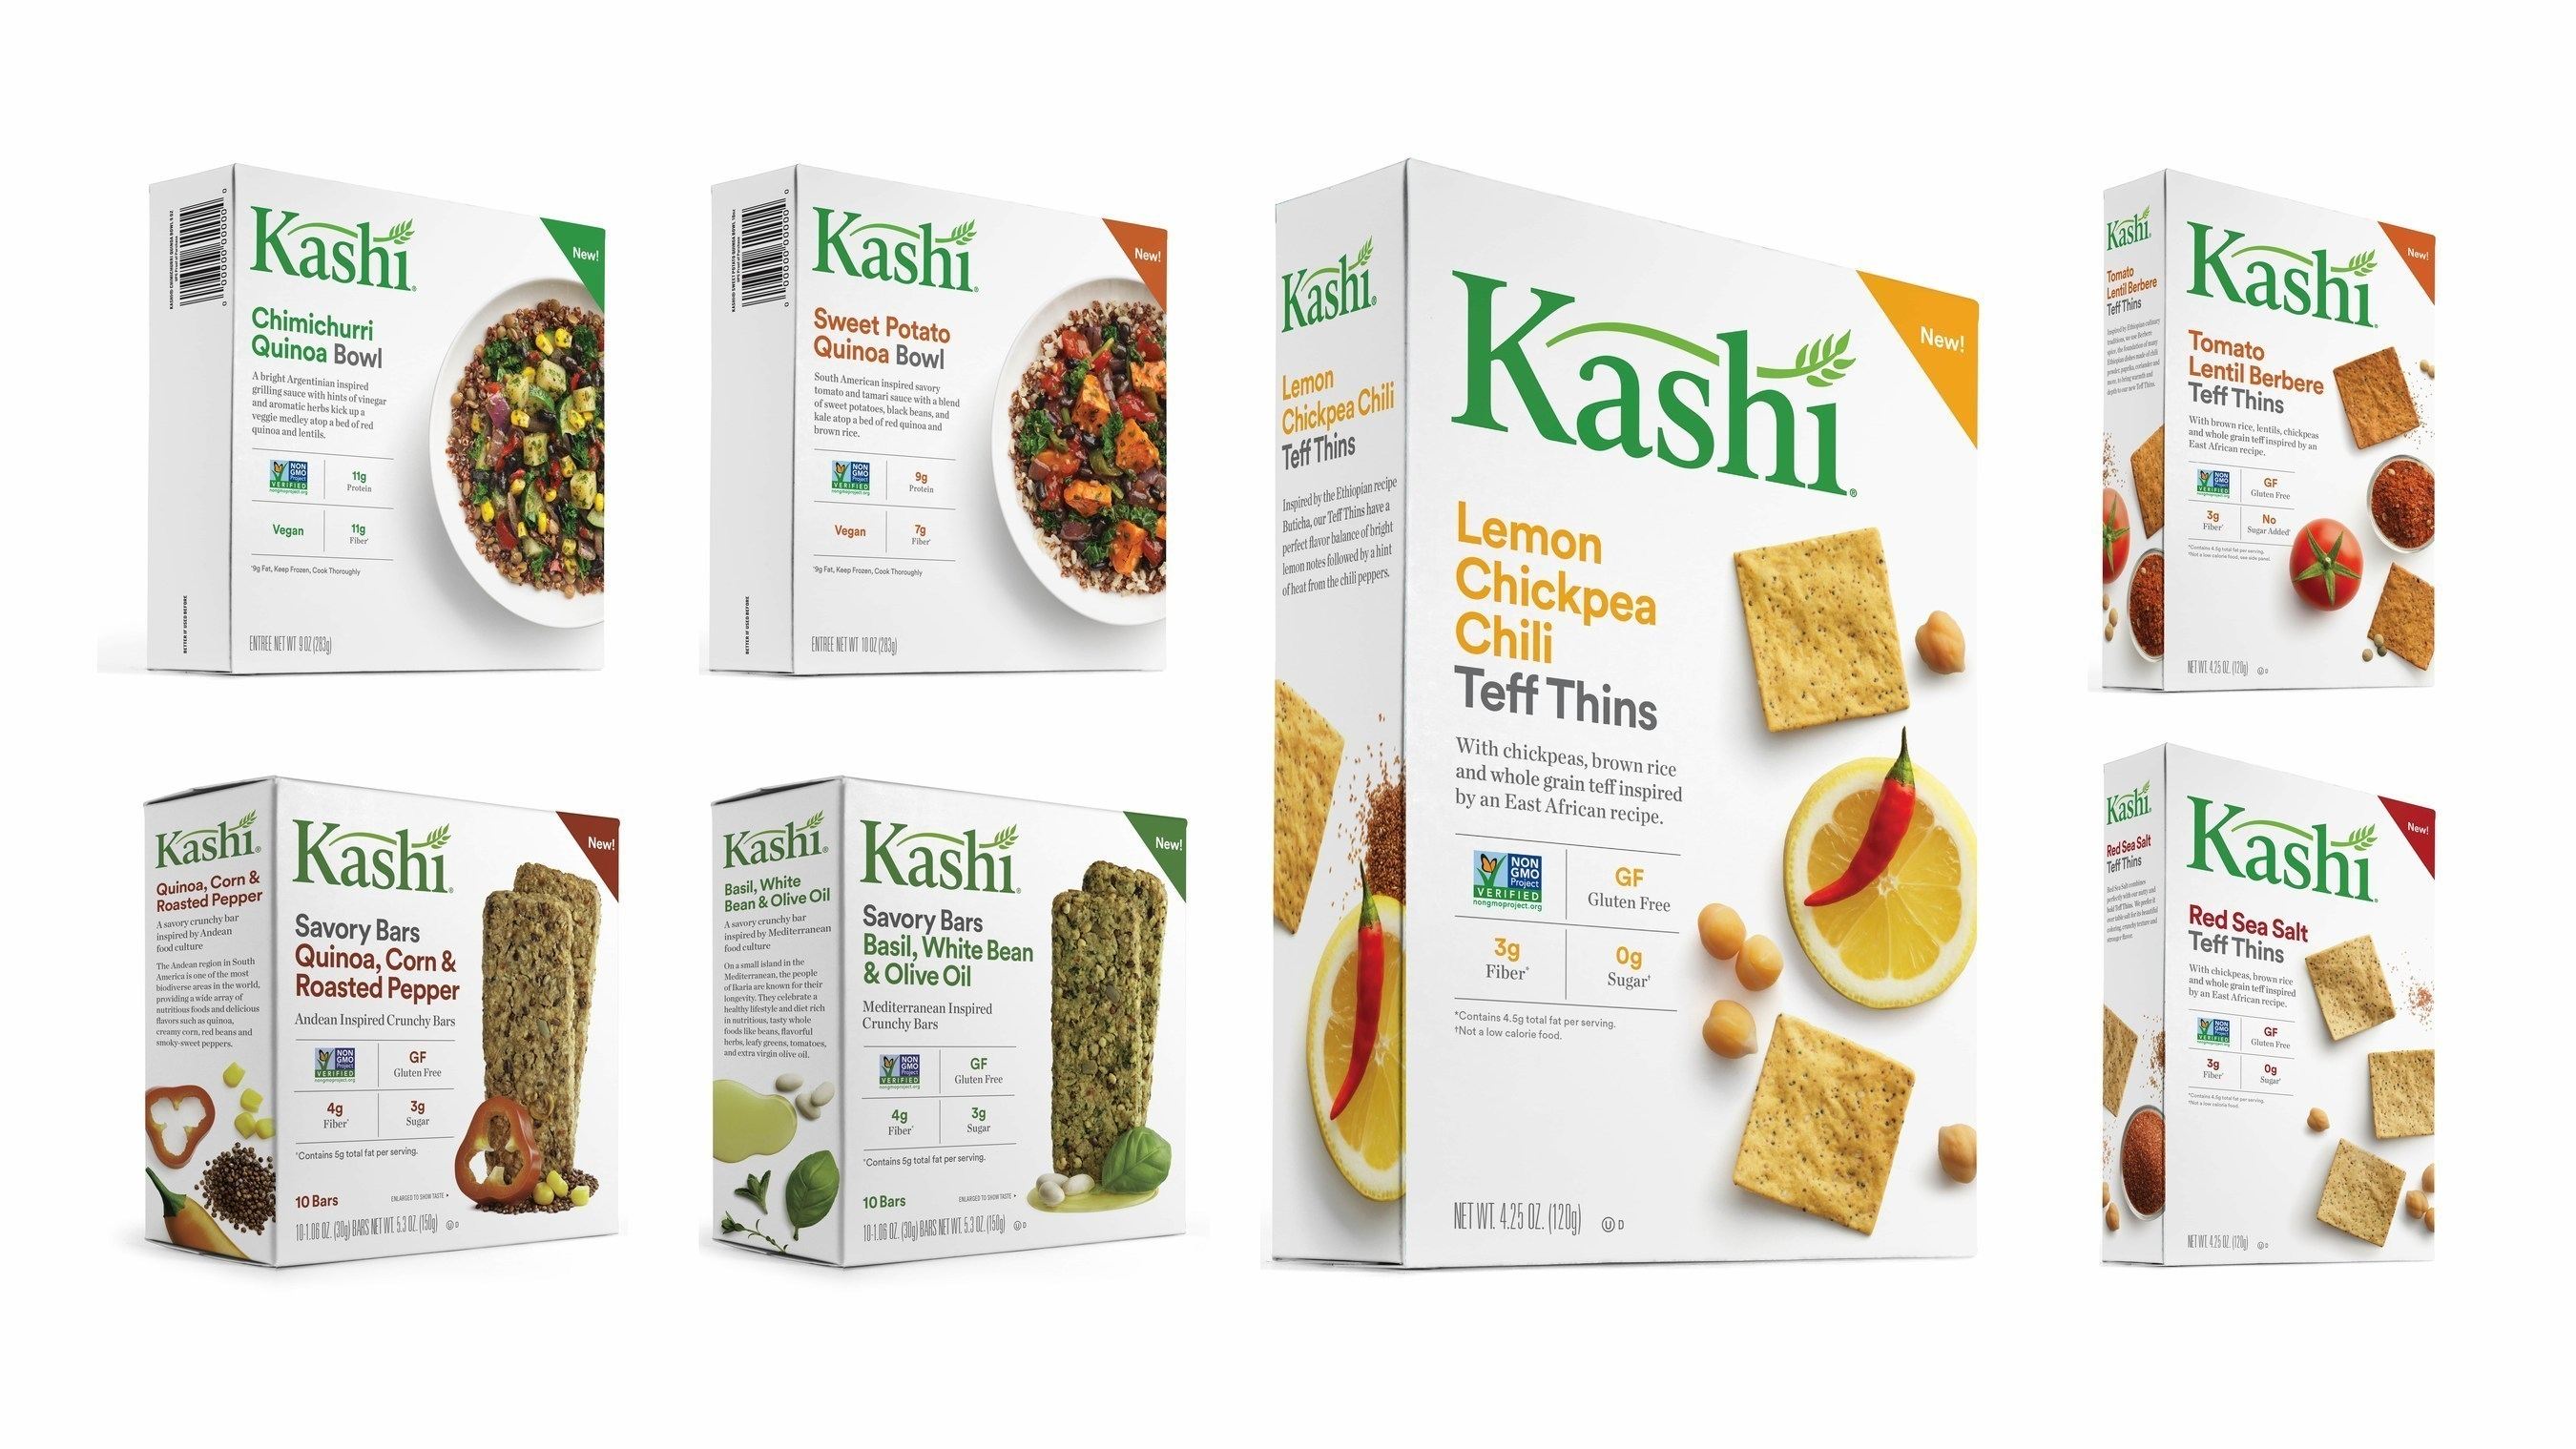 Kashi's new plant-centric foods are rooted in tradition and feature ancient grains and bold, savory flavors